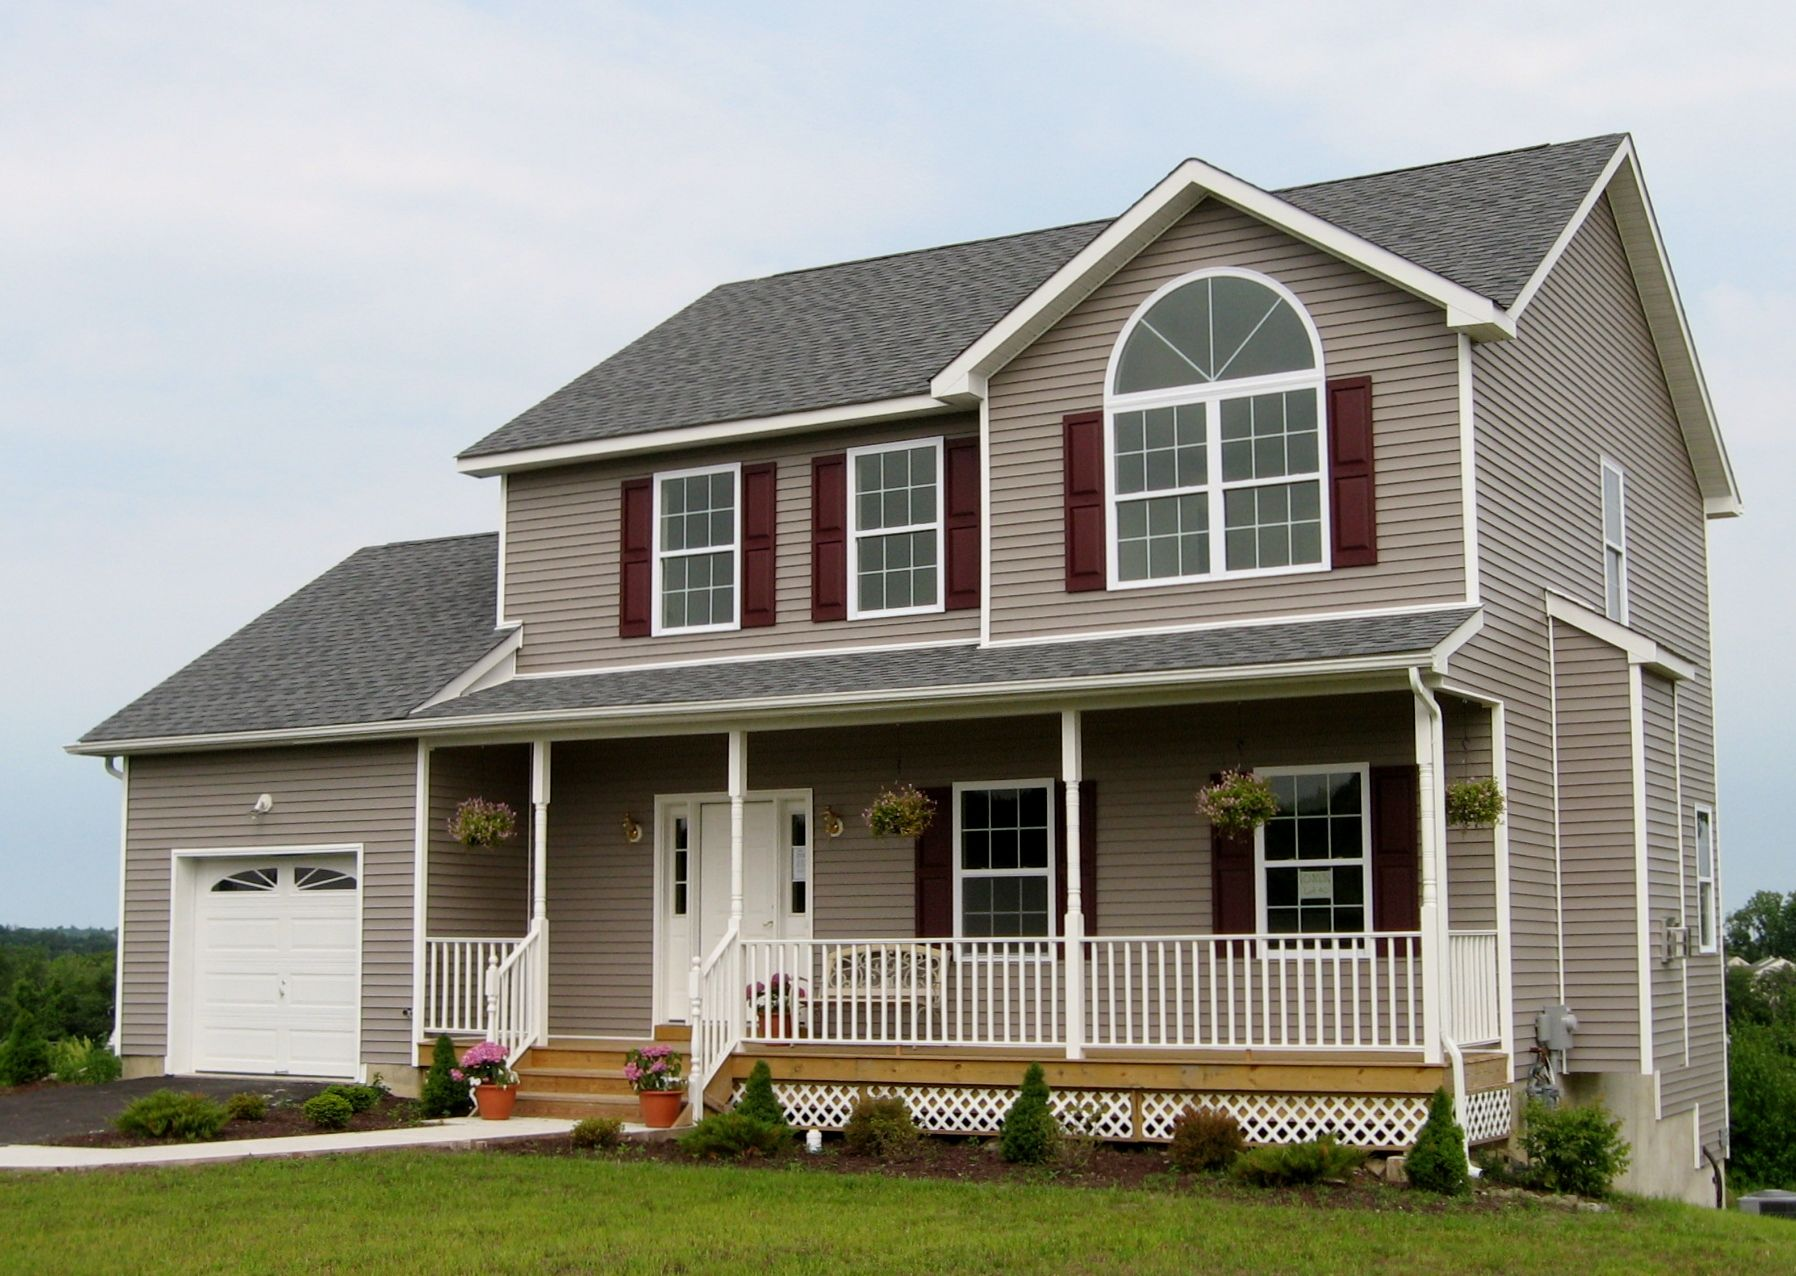 Middletown new york homes for sale luxury real estate for Luxury homes for sale new york